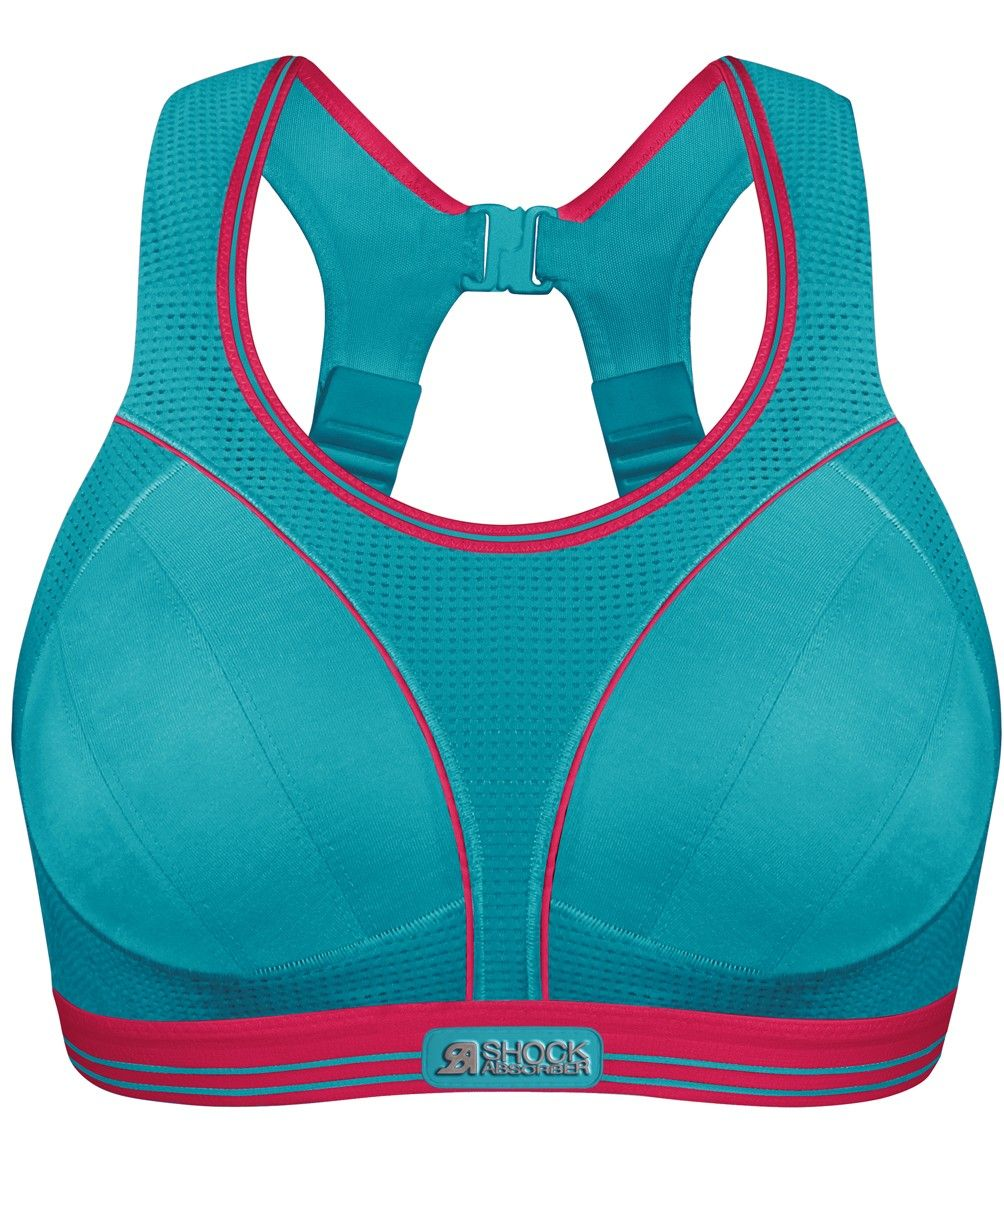 5 Awesome Running Sports Bras for Larger Cup Sizes Fit